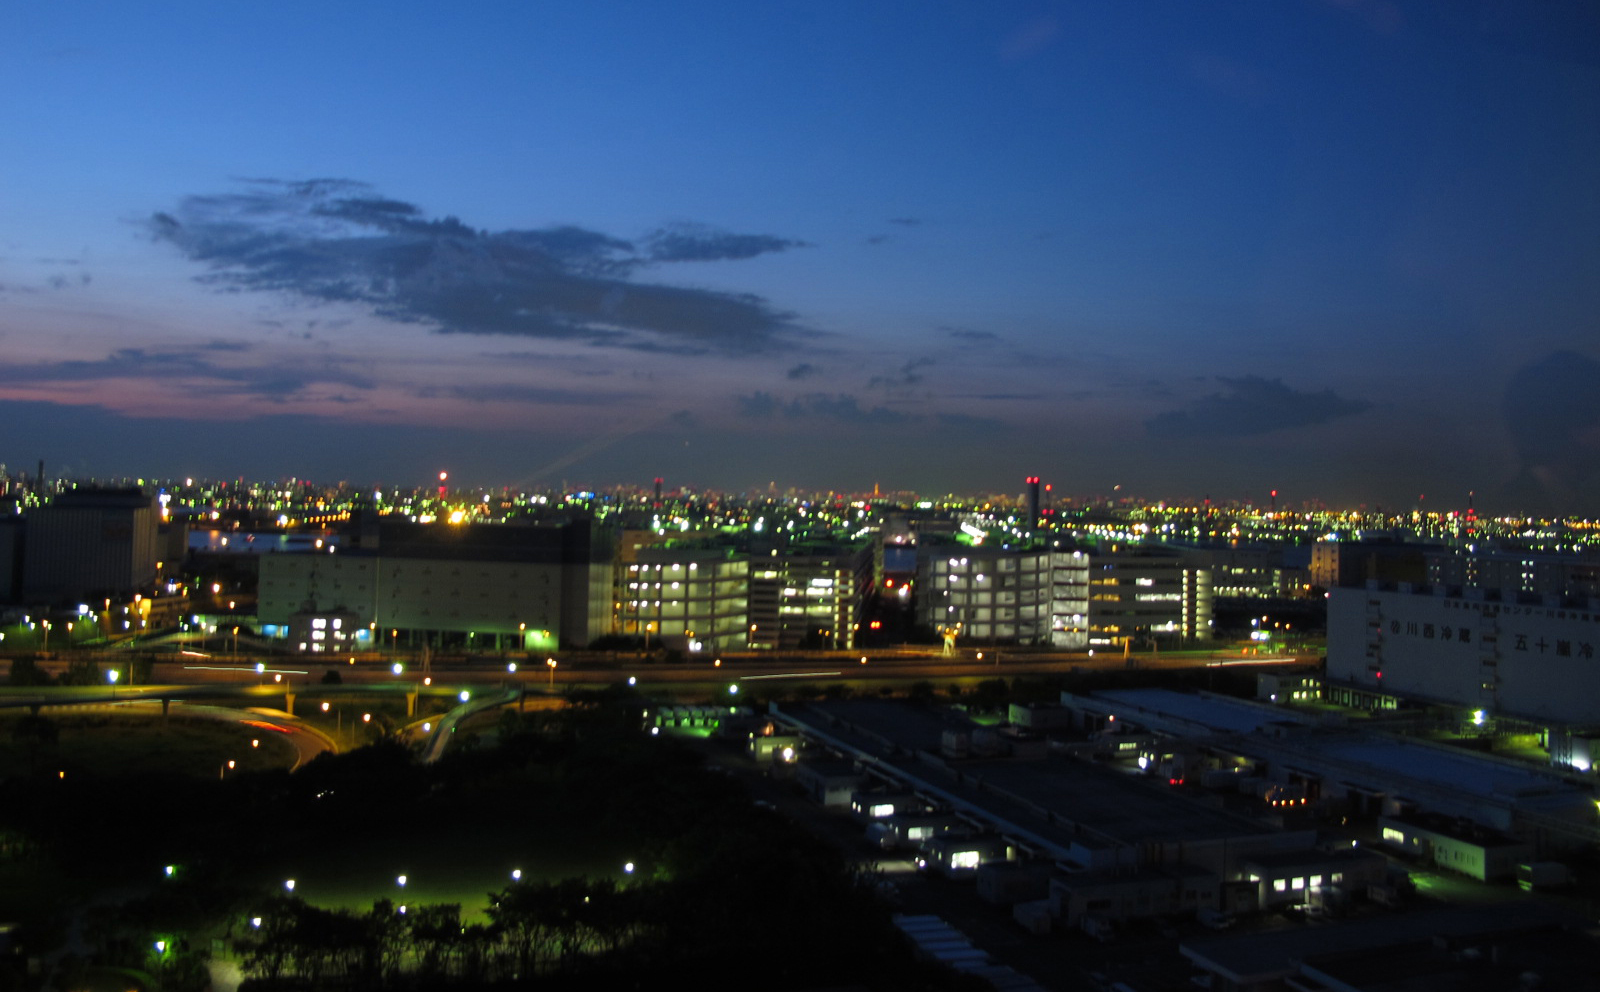 Kawasaki Factory Night Bus Tour: The Hidden Charm of the Factory Nightscape